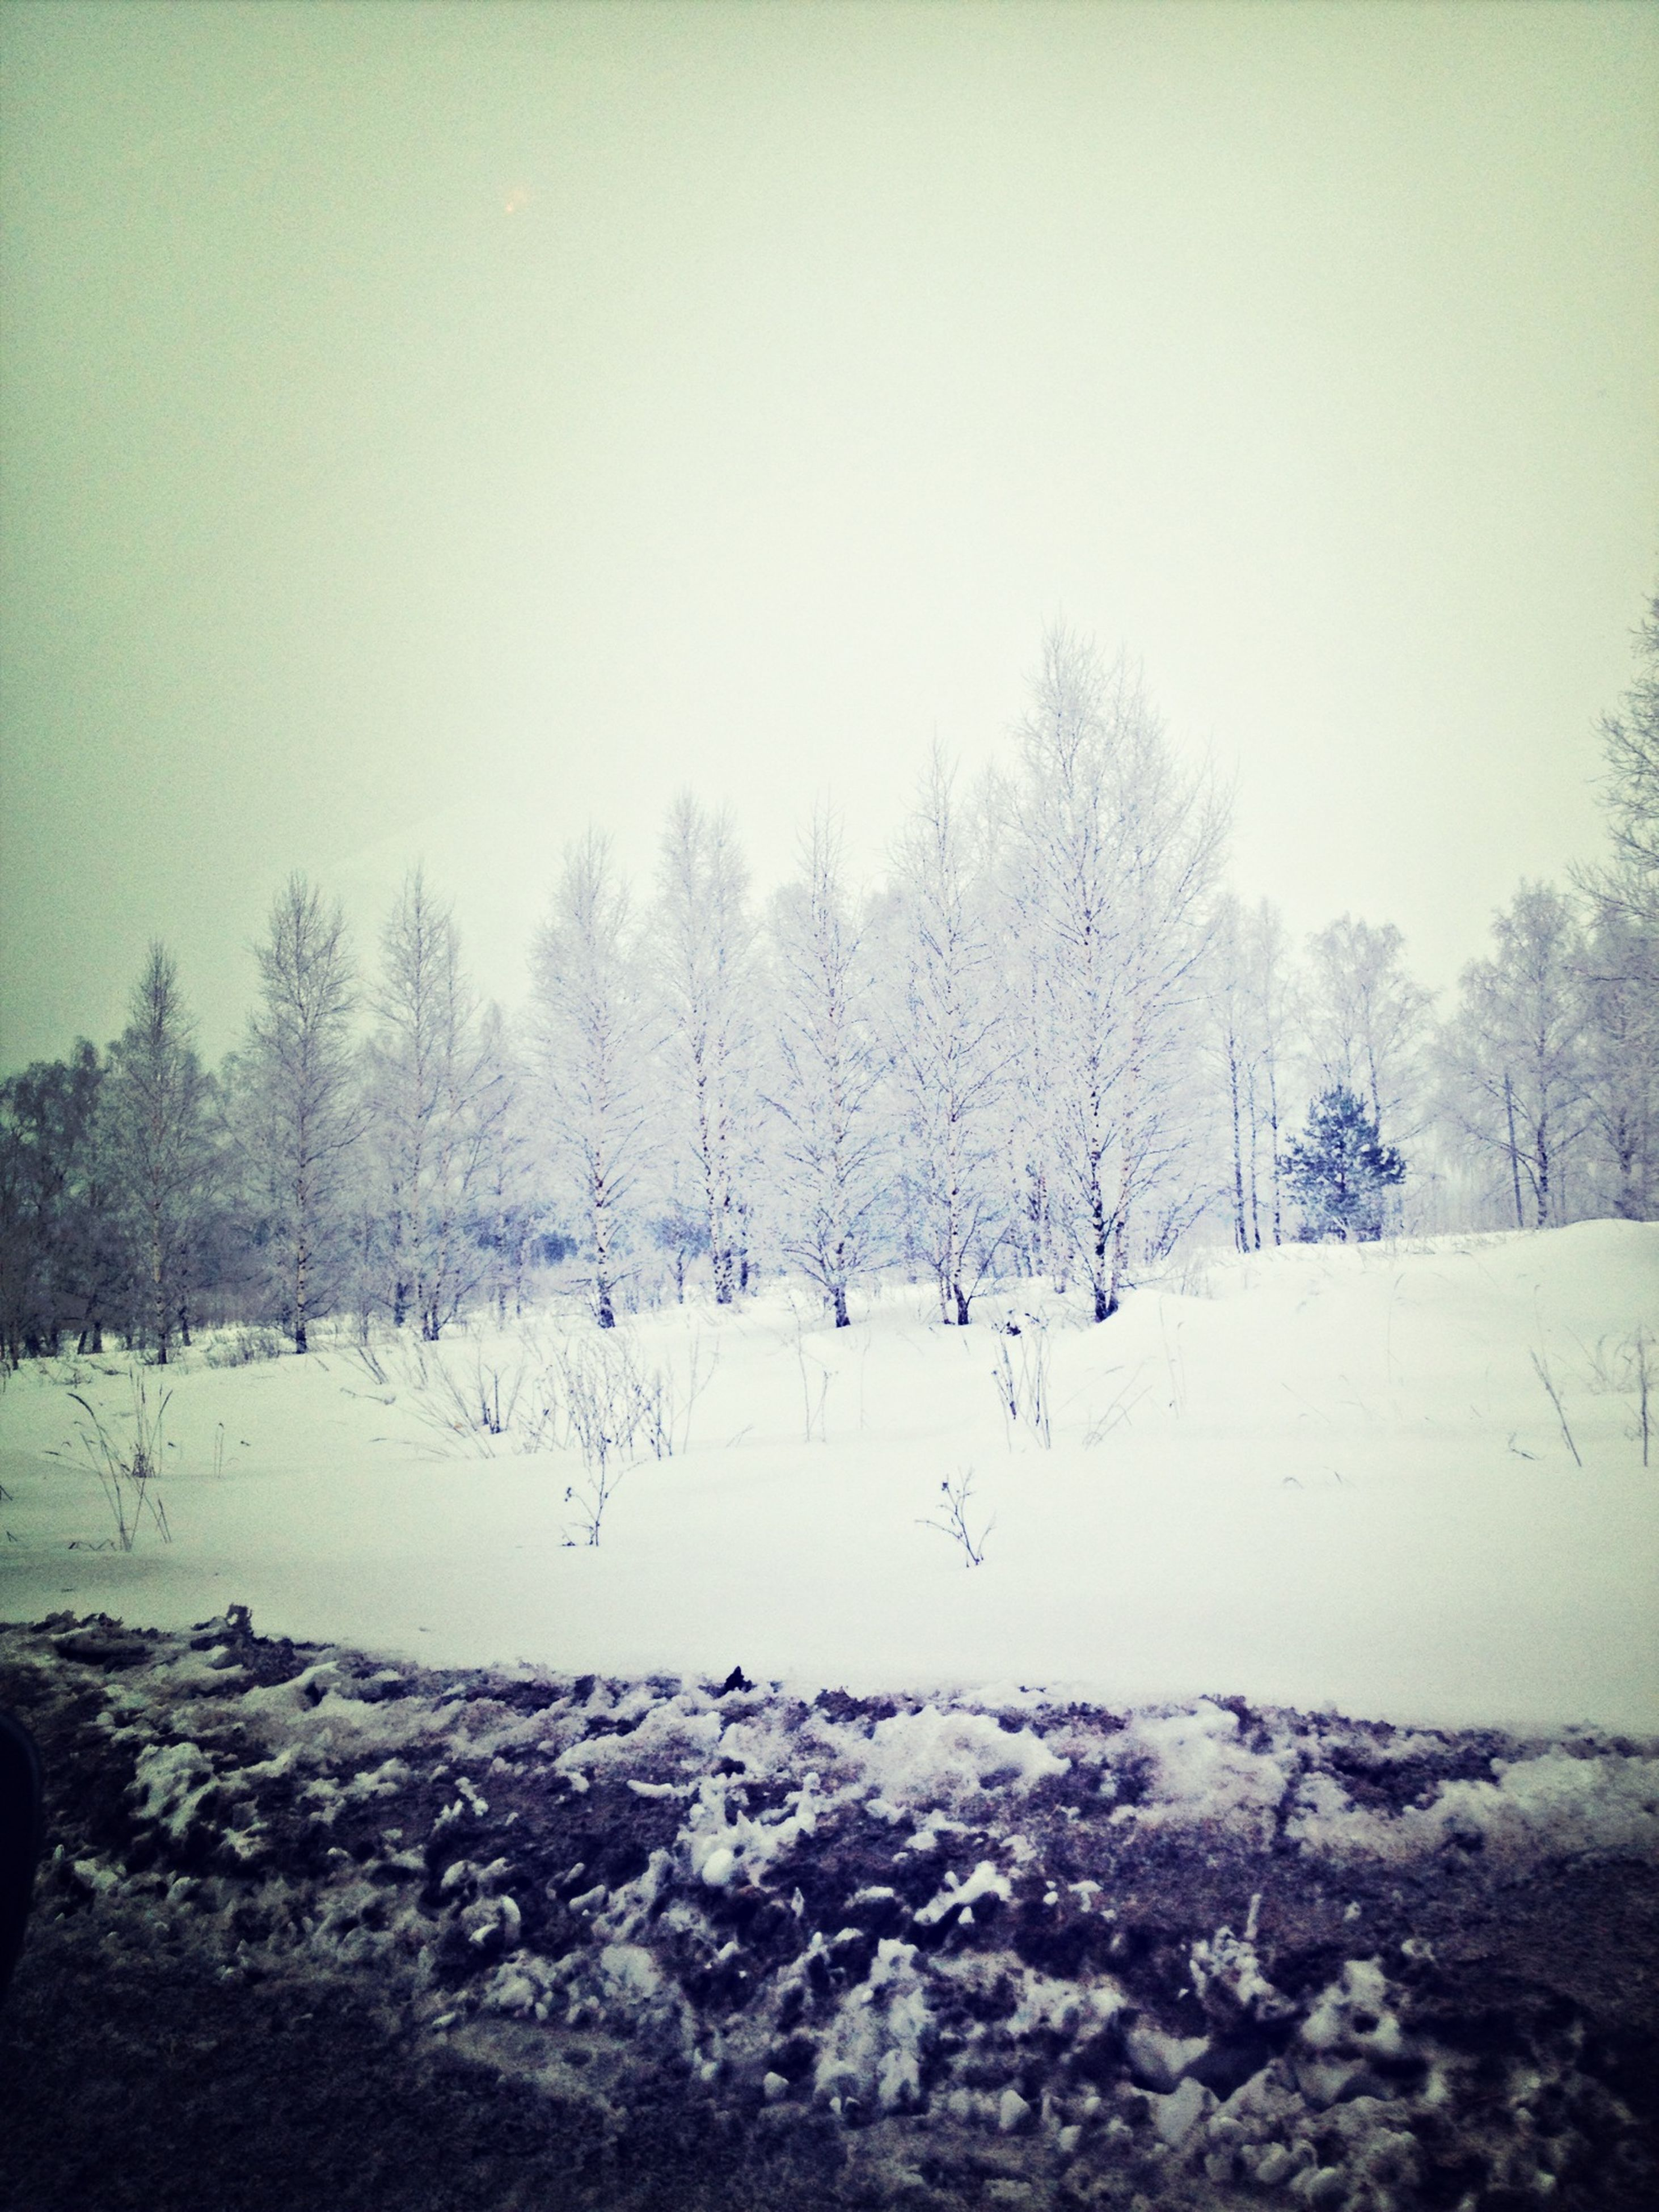 winter, snow, cold temperature, tree, season, weather, clear sky, landscape, field, tranquil scene, nature, copy space, bare tree, tranquility, covering, beauty in nature, white color, scenics, day